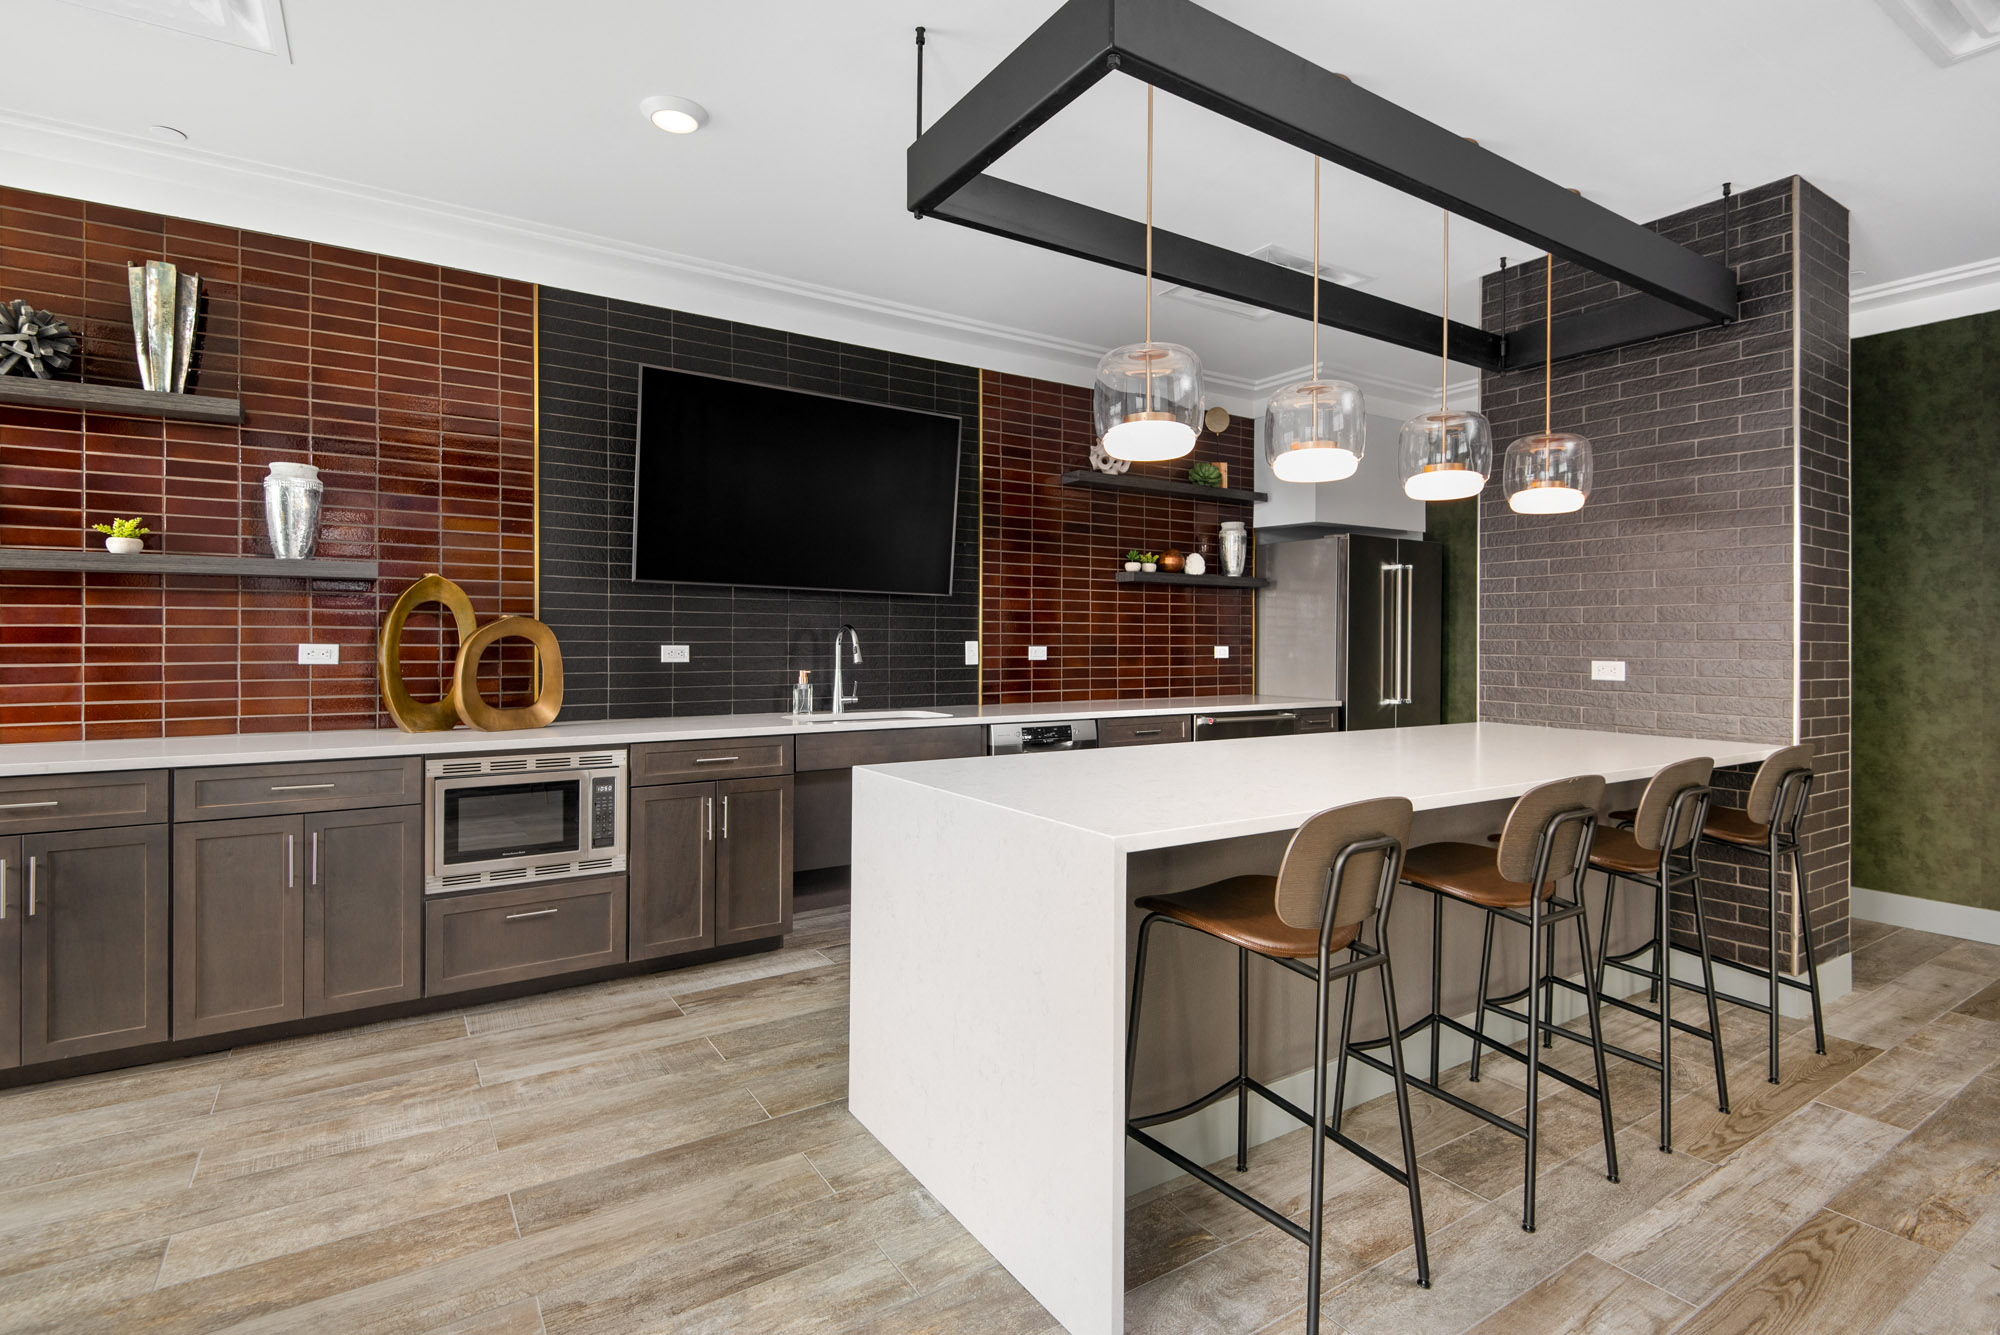 Demonstration kitchen with refrigerator, microwave, countertop, and four barstools